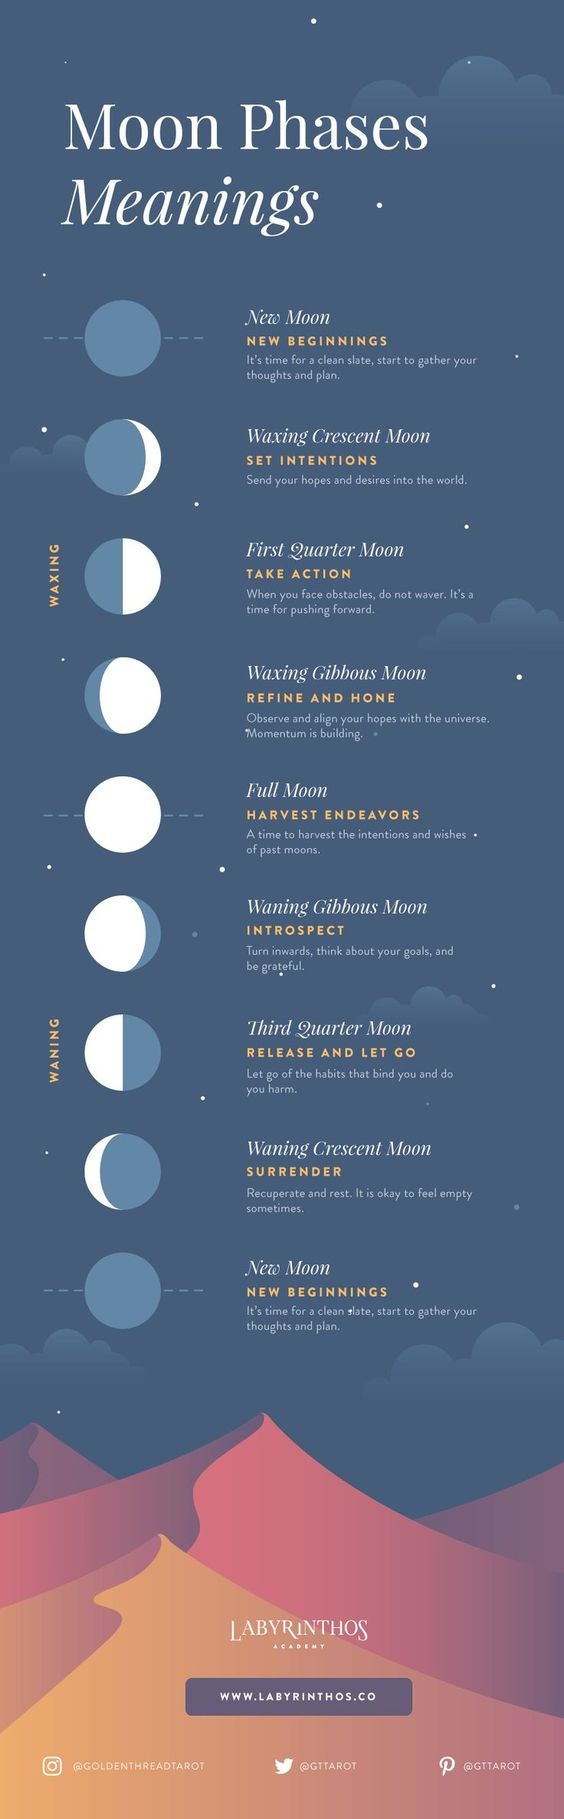 Moon Phases Meanings Infographic A Beginners Framework For